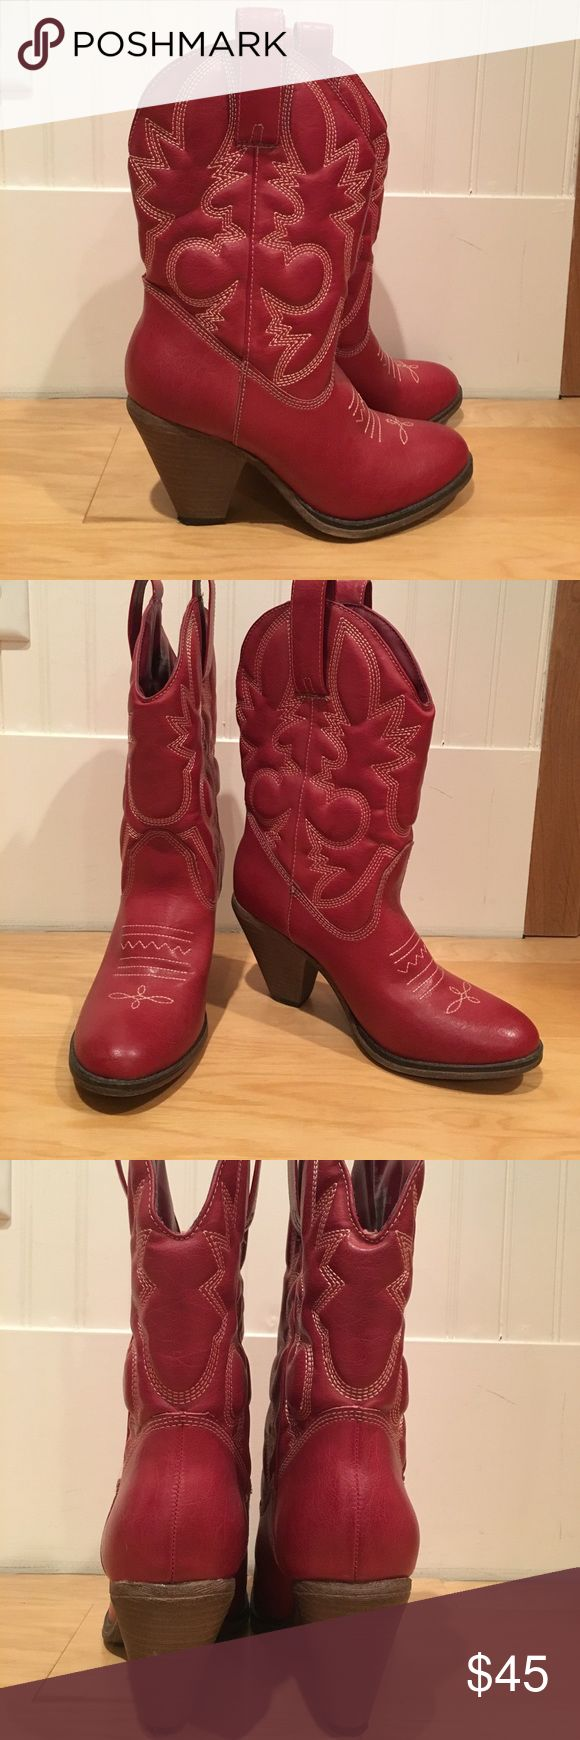 Red cowboy boots Red heeled cowboy boots. Super comfy! Shoes Heeled Boots